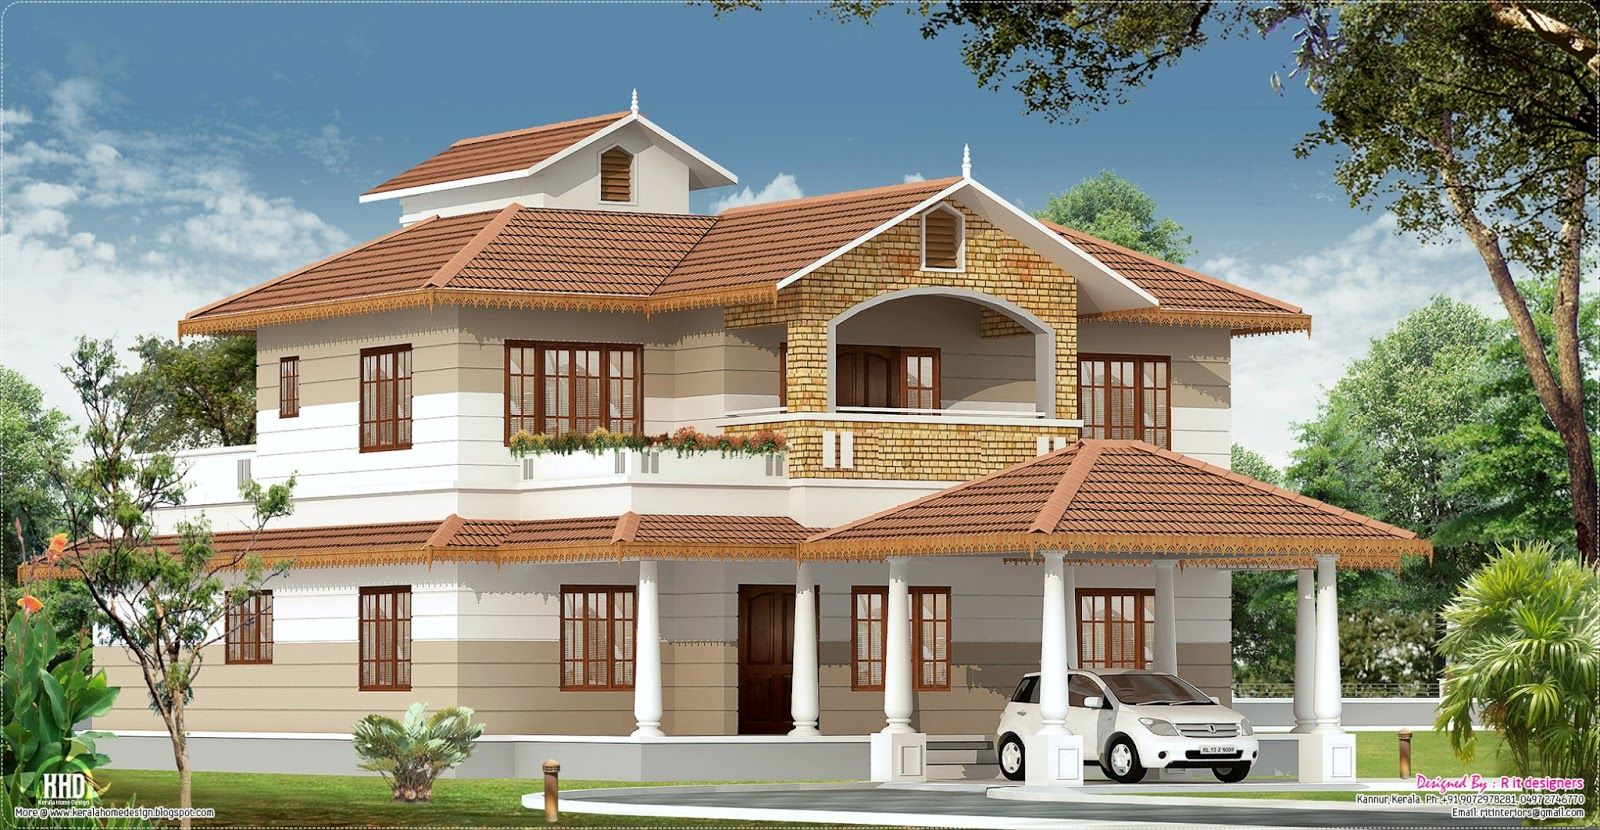 Kerala Style Home Interior Designs Designers Kannur Kerala Kerala Home Design Architecture House Plans Pictures